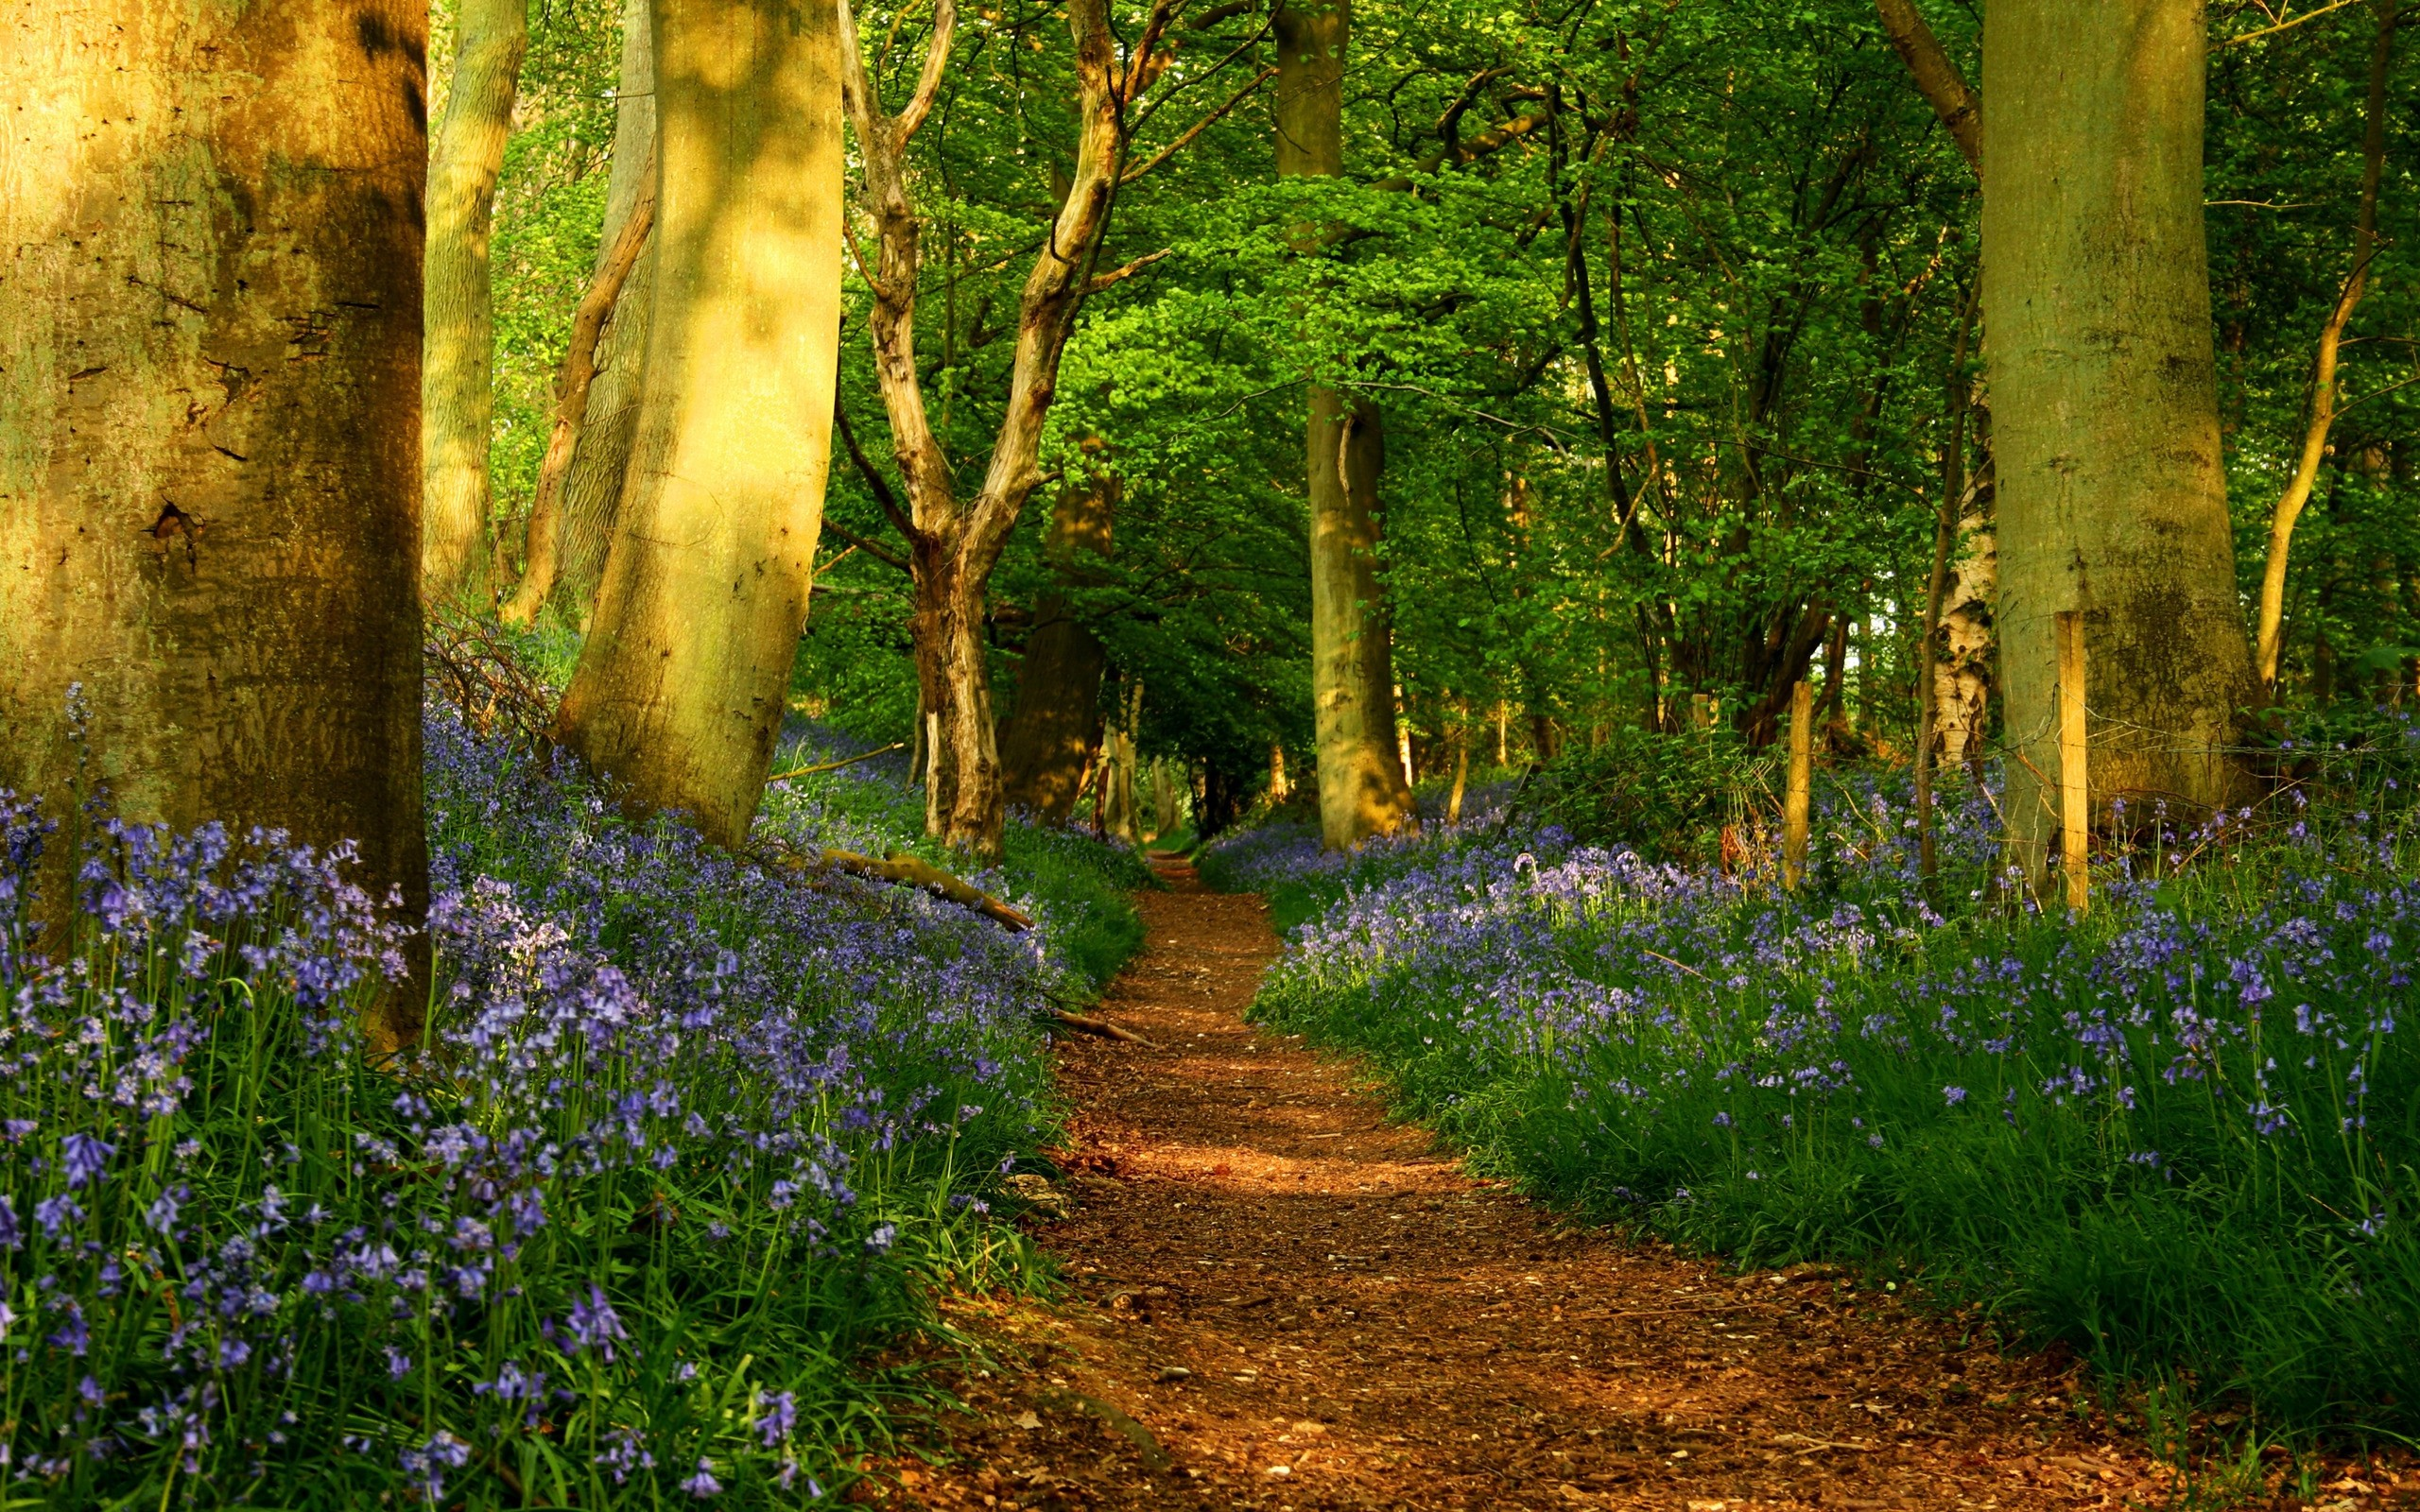 download spring screensavers 21543 2560x1600 px high definition